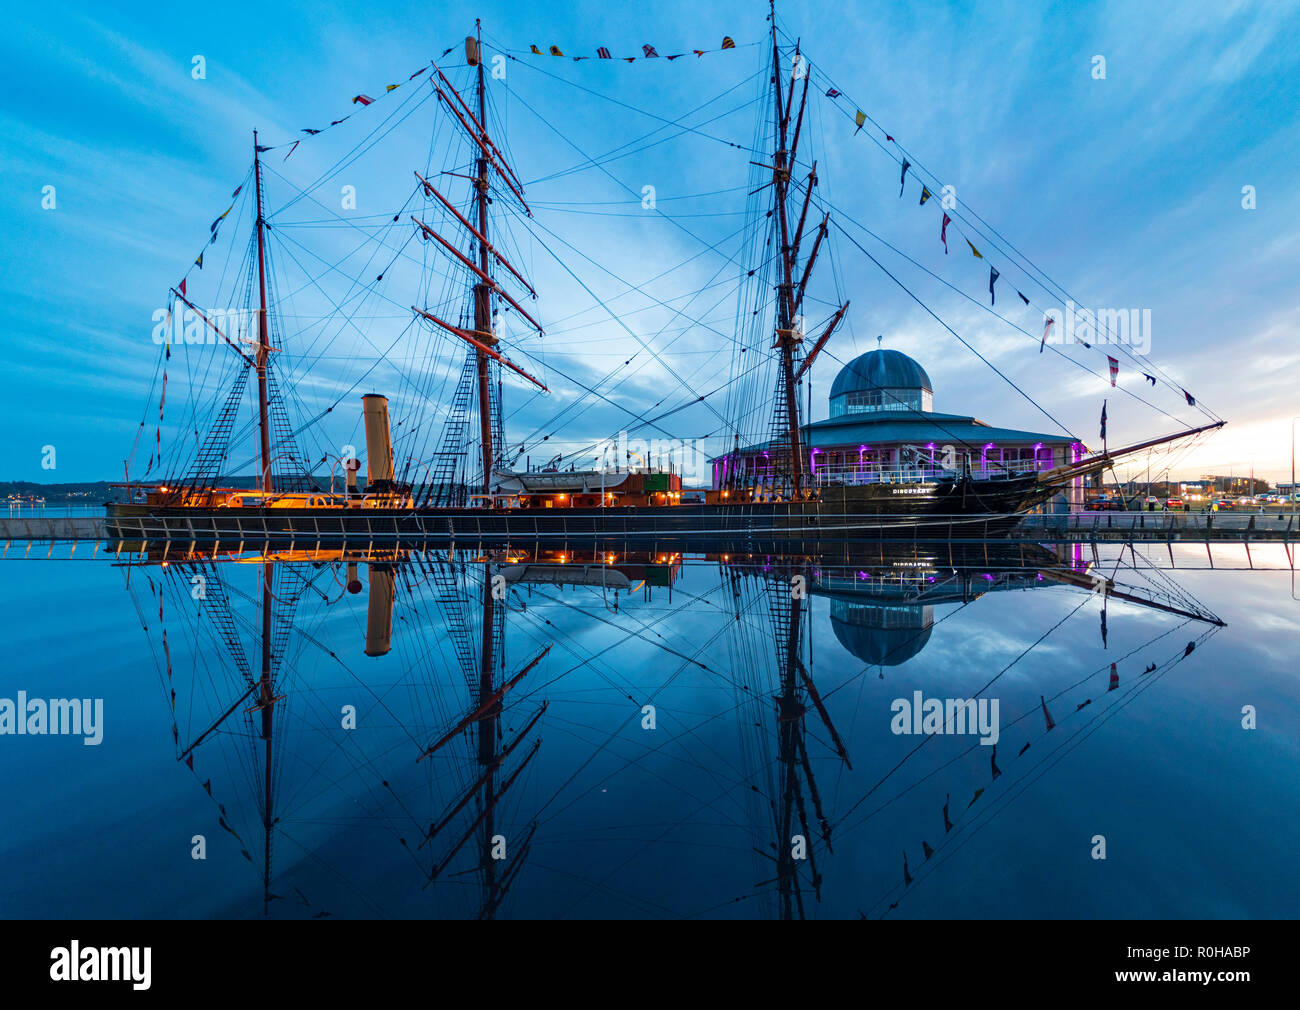 Reflection  of RRS Discovery ship at Discovery Point museum in the evening in Dundee, Tayside, Scotland, UK - Stock Image